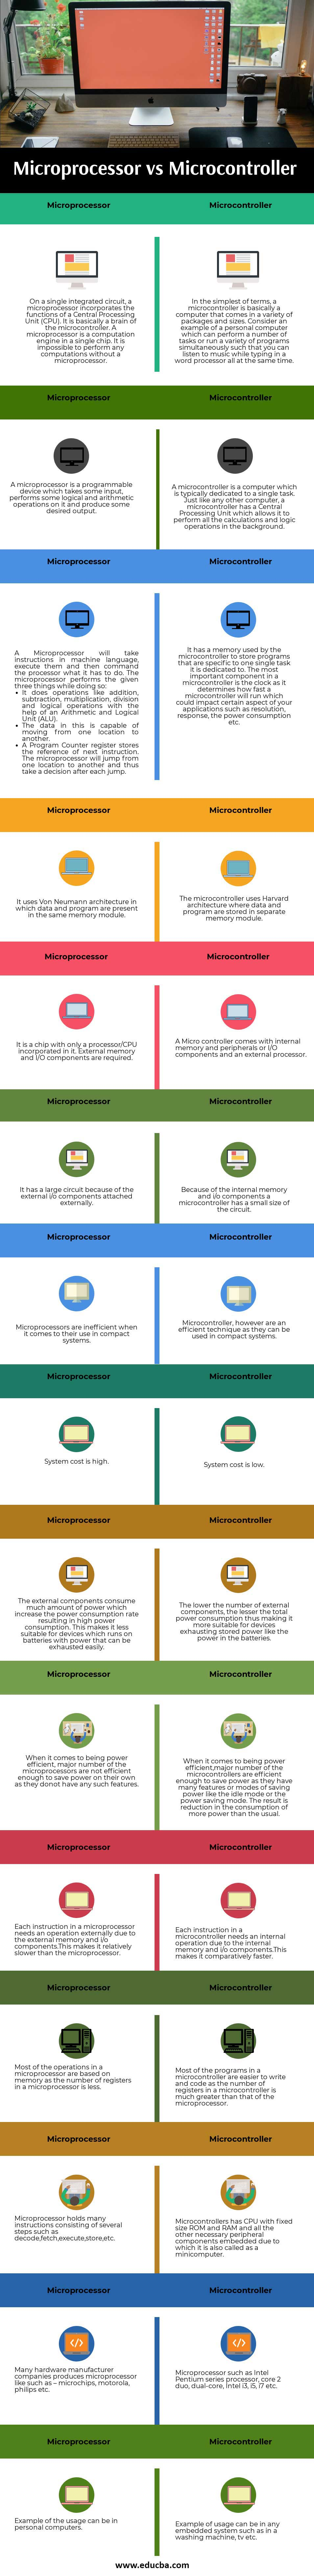 Microprocessor vs Microcontroller info